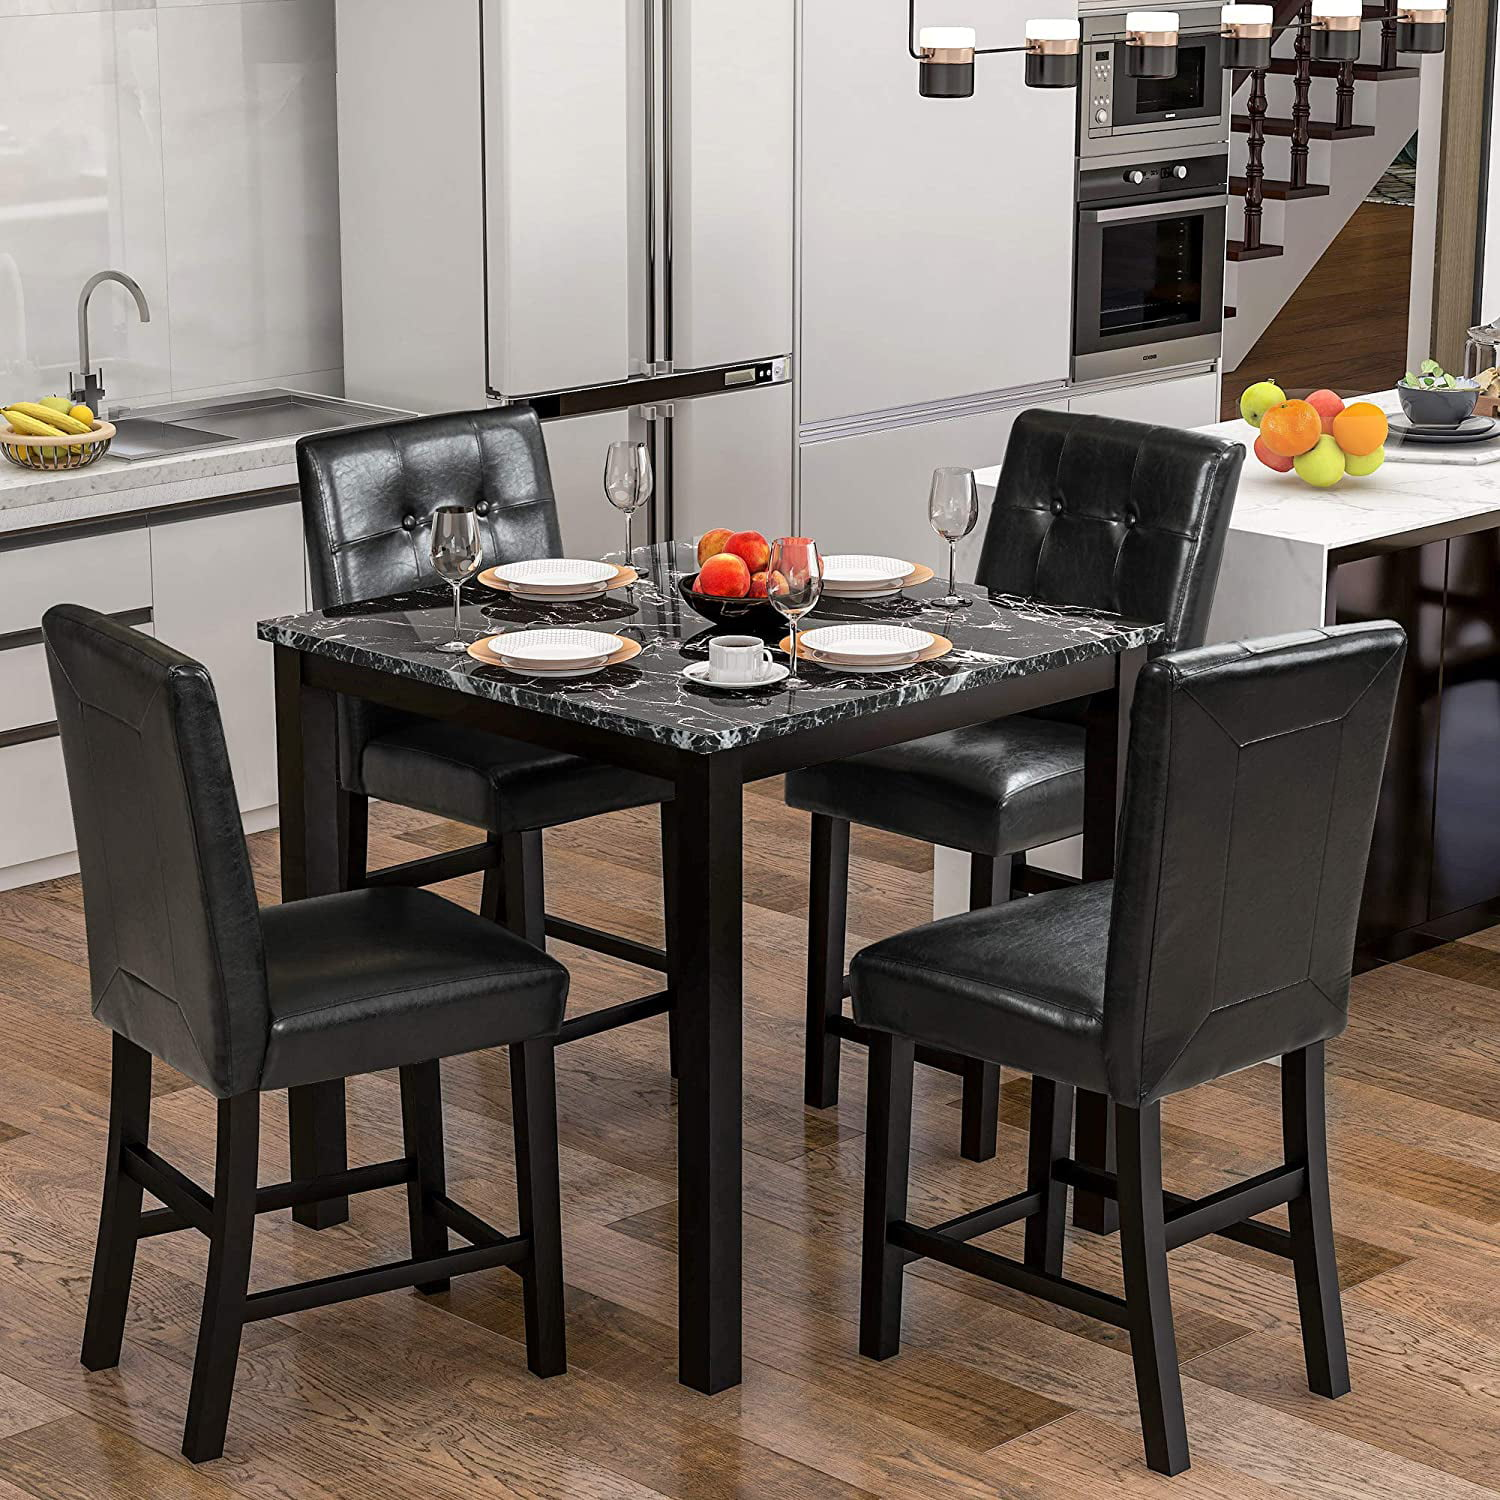 Dining Sets for 9, 9 Pieces Kitchen Table Set with Laminated Faux Marble  Top Counter Height Dining Table Set with 9 Chairs   Walmart.com